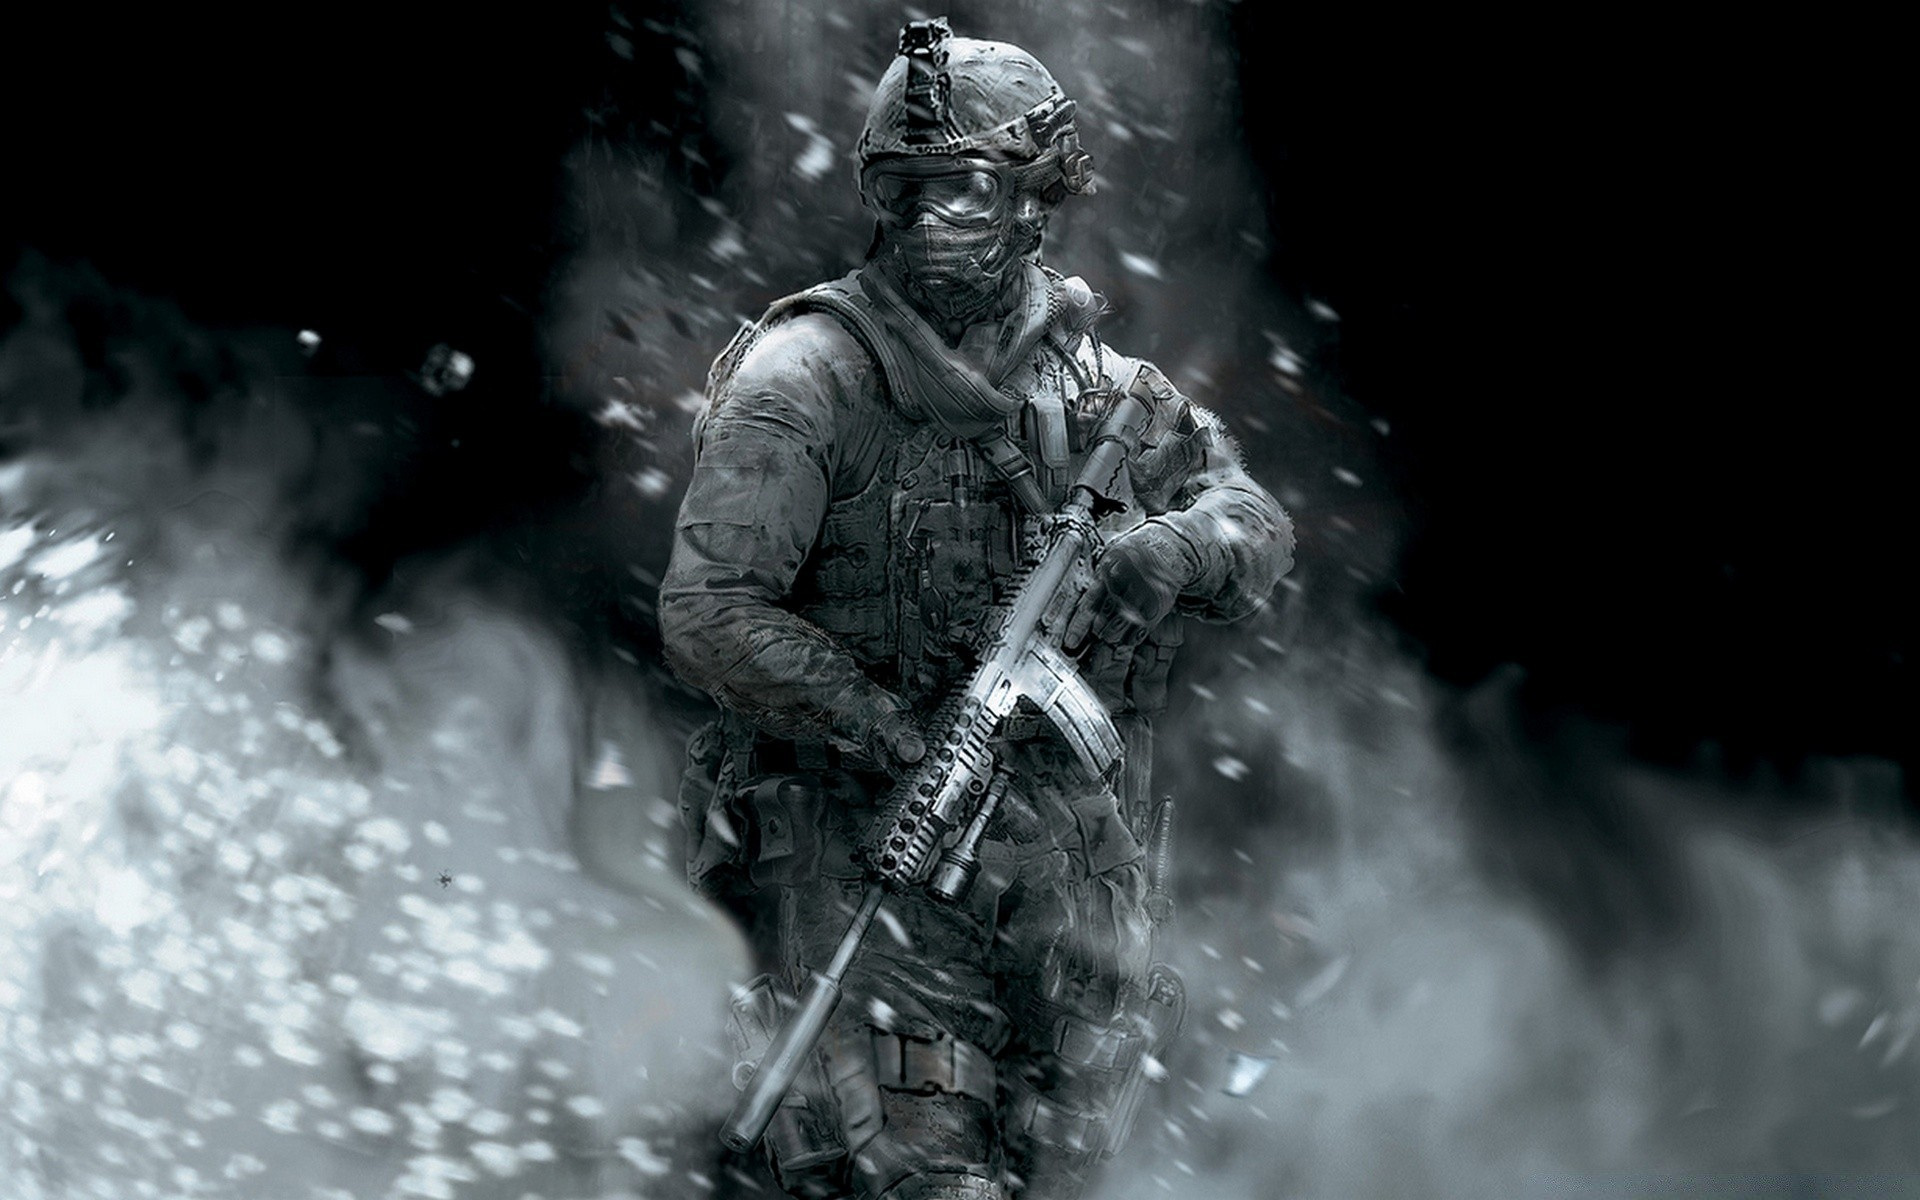 42 cool army wallpapers in hd for free download - HD 1920×1200